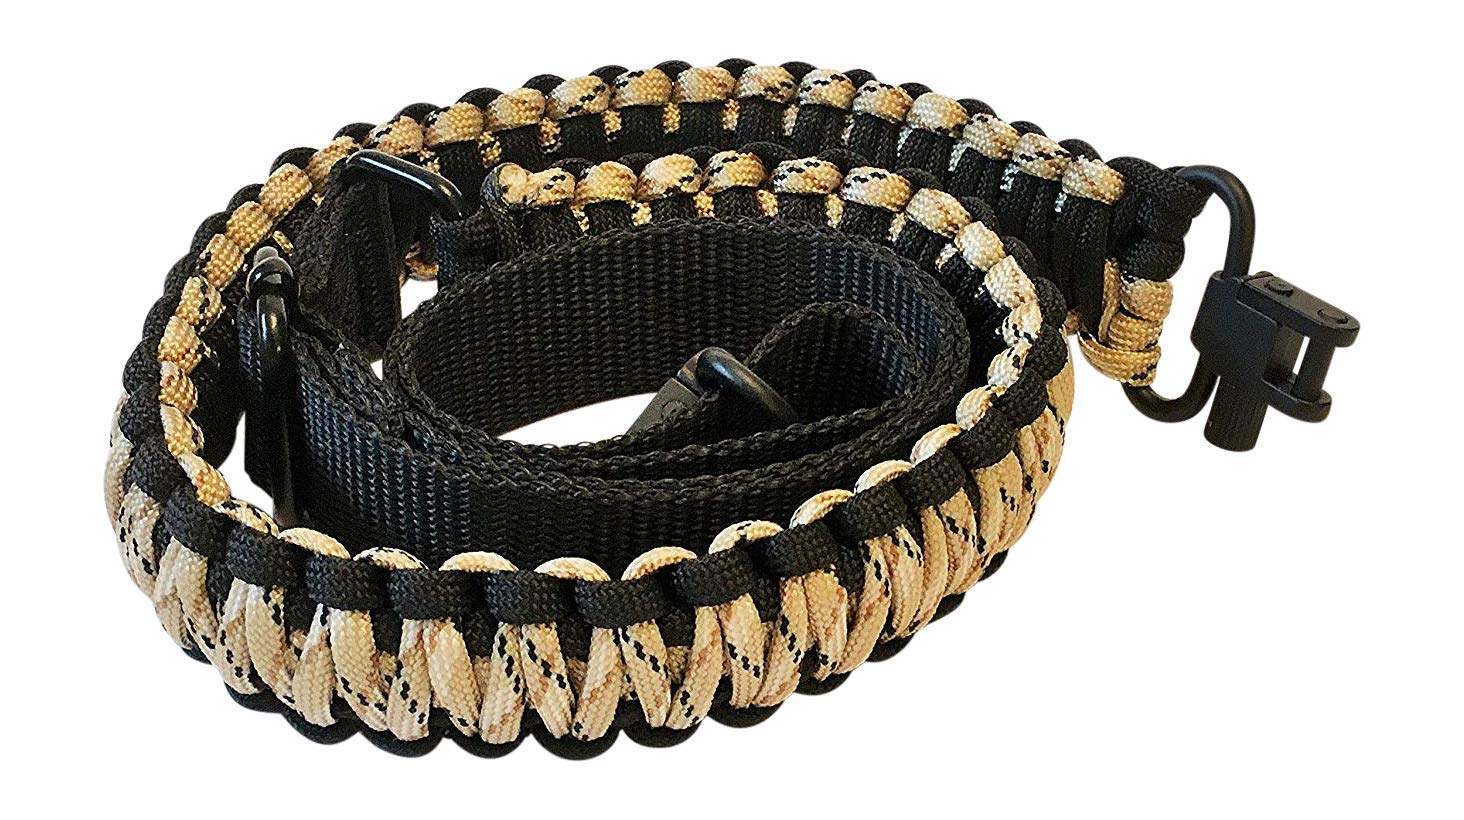 Ten Point Gear Gun Sling Paracord 550 Adjustible w/Swivels (Multiple Color Options) (Black & Tan Camo) by Ten Point Gear